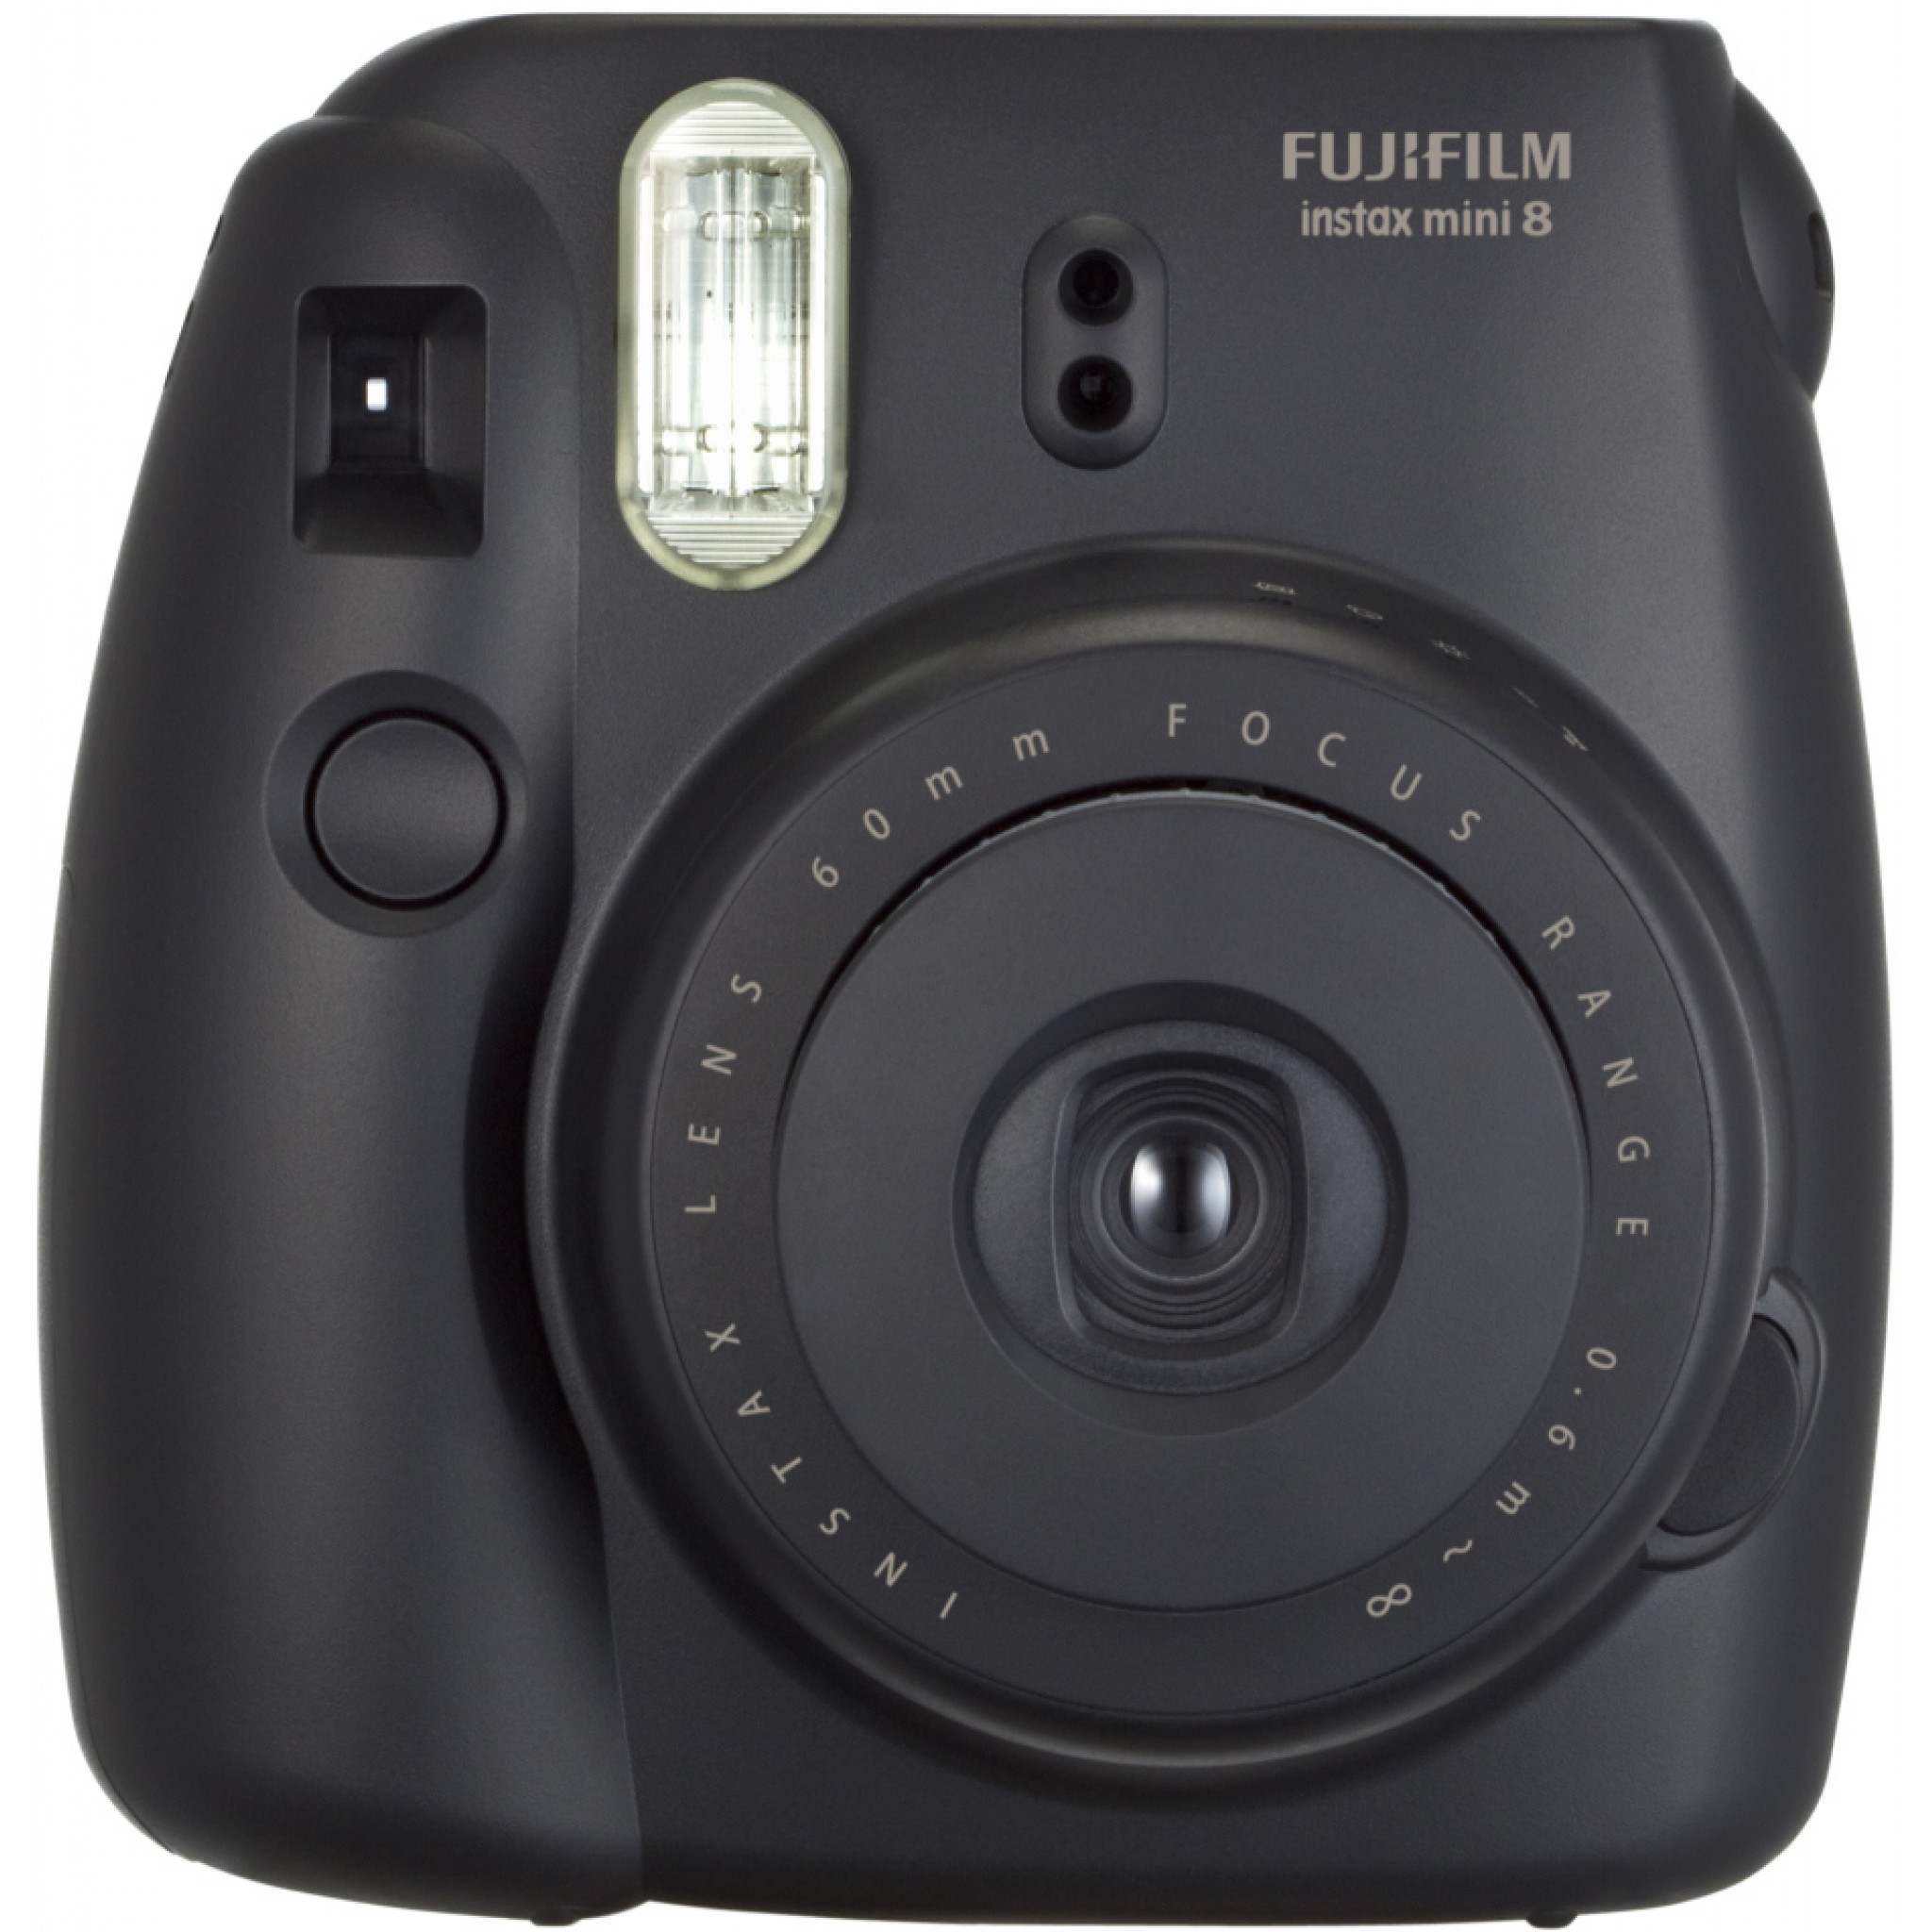 fujifilm instax mini 8 digital camera black. Black Bedroom Furniture Sets. Home Design Ideas